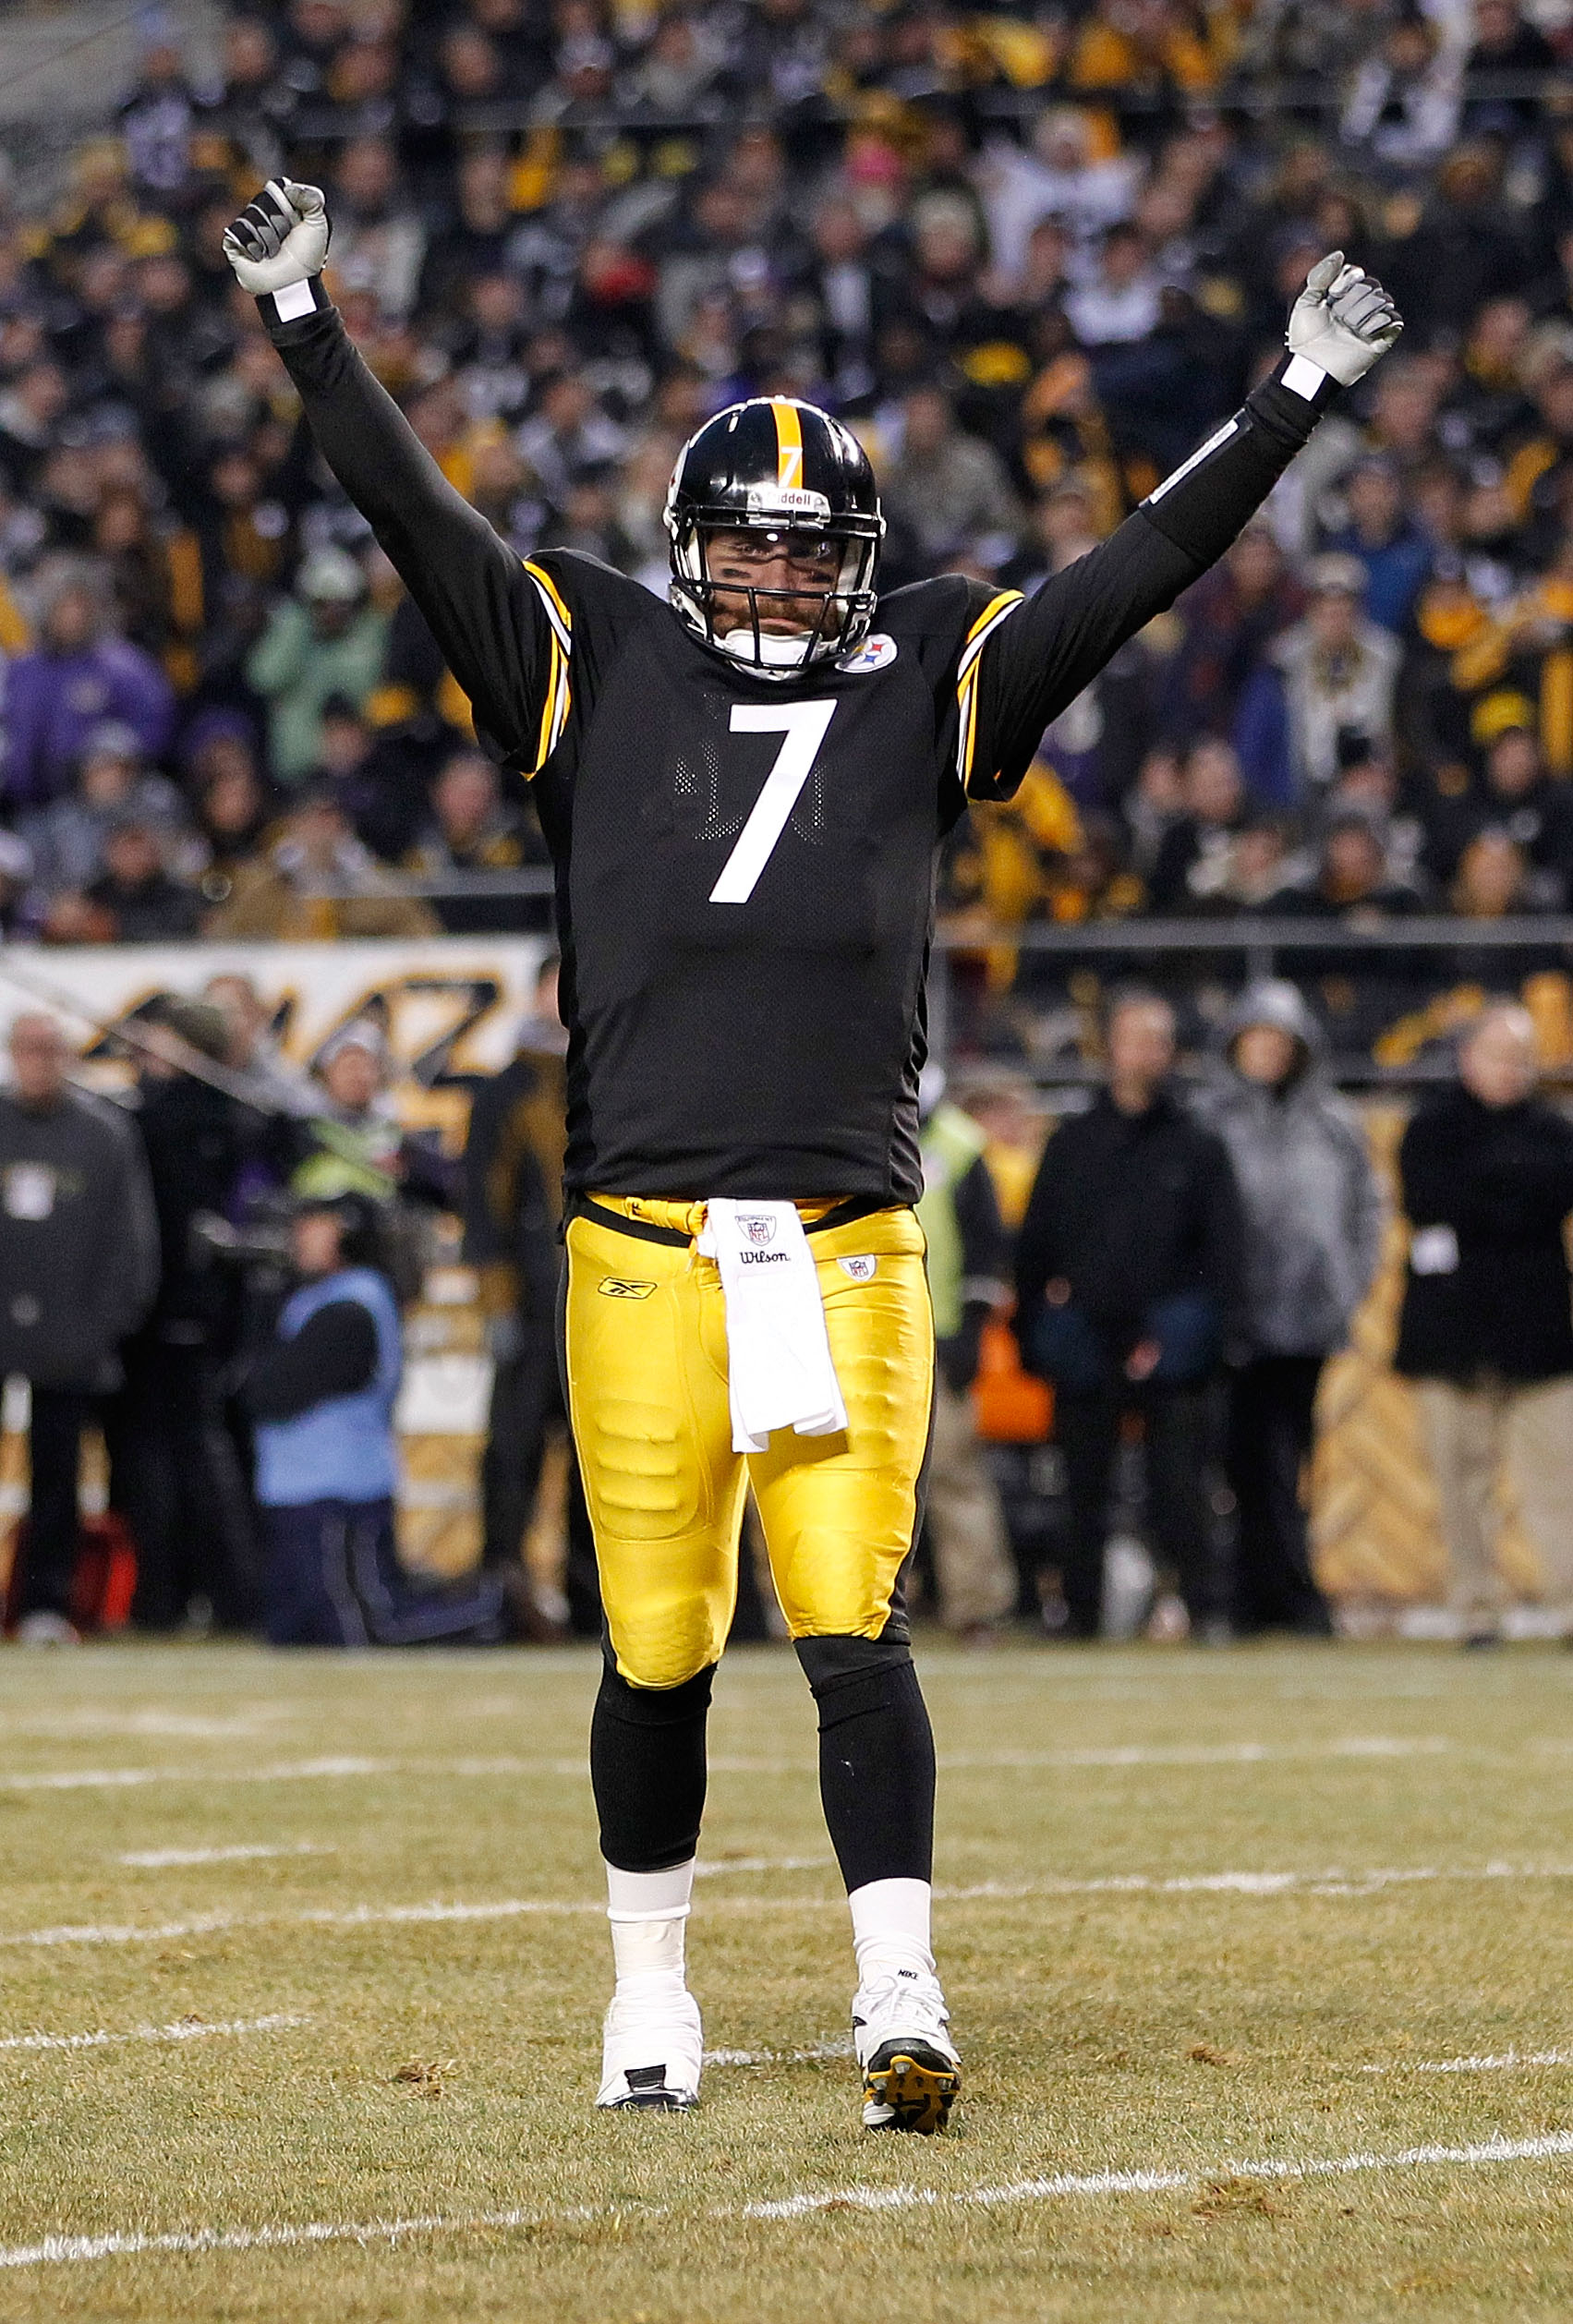 PITTSBURGH, PA - JANUARY 15: Quarterback Ben Roethlisberger #7 of the Pittsburgh Steelers celebrates a touchdown against the Baltimore Ravens in the first quarter of the AFC Divisional Playoff Game at Heinz Field on January 15, 2011 in Pittsburgh, Pennsyl